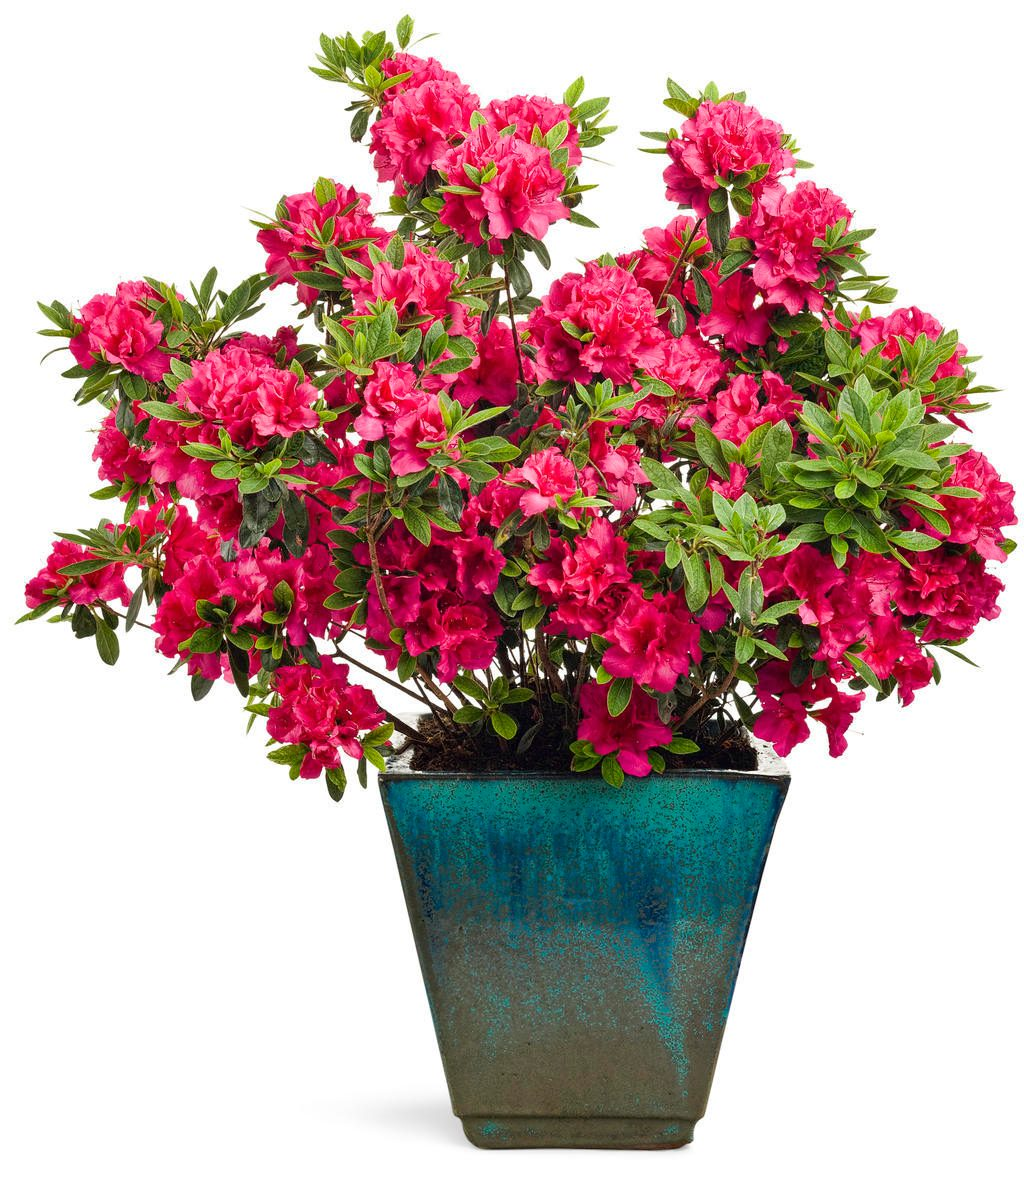 bloom-a-thon azalea proven winners